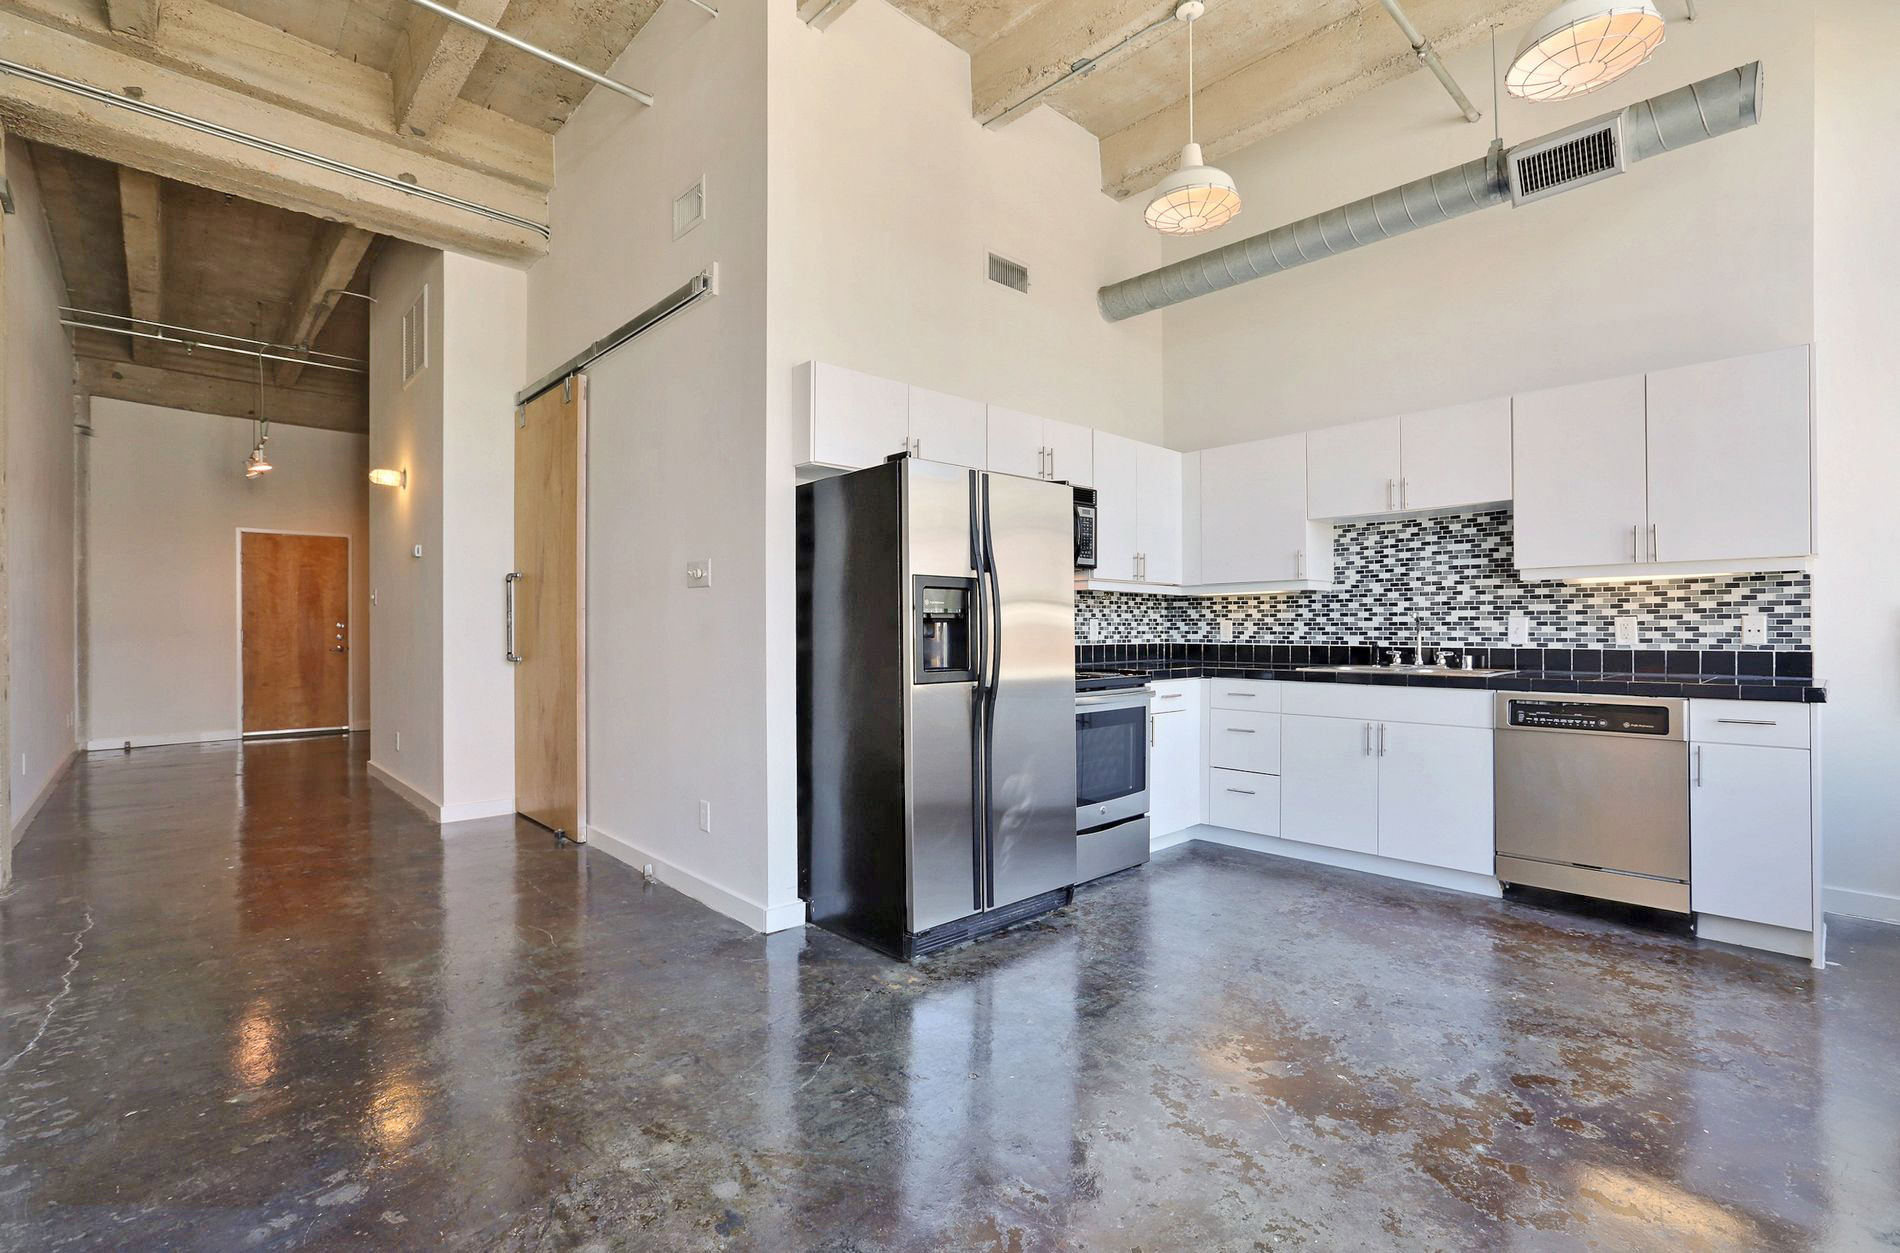 Photos And Video Of Deep Ellum Lofts In Dallas TX